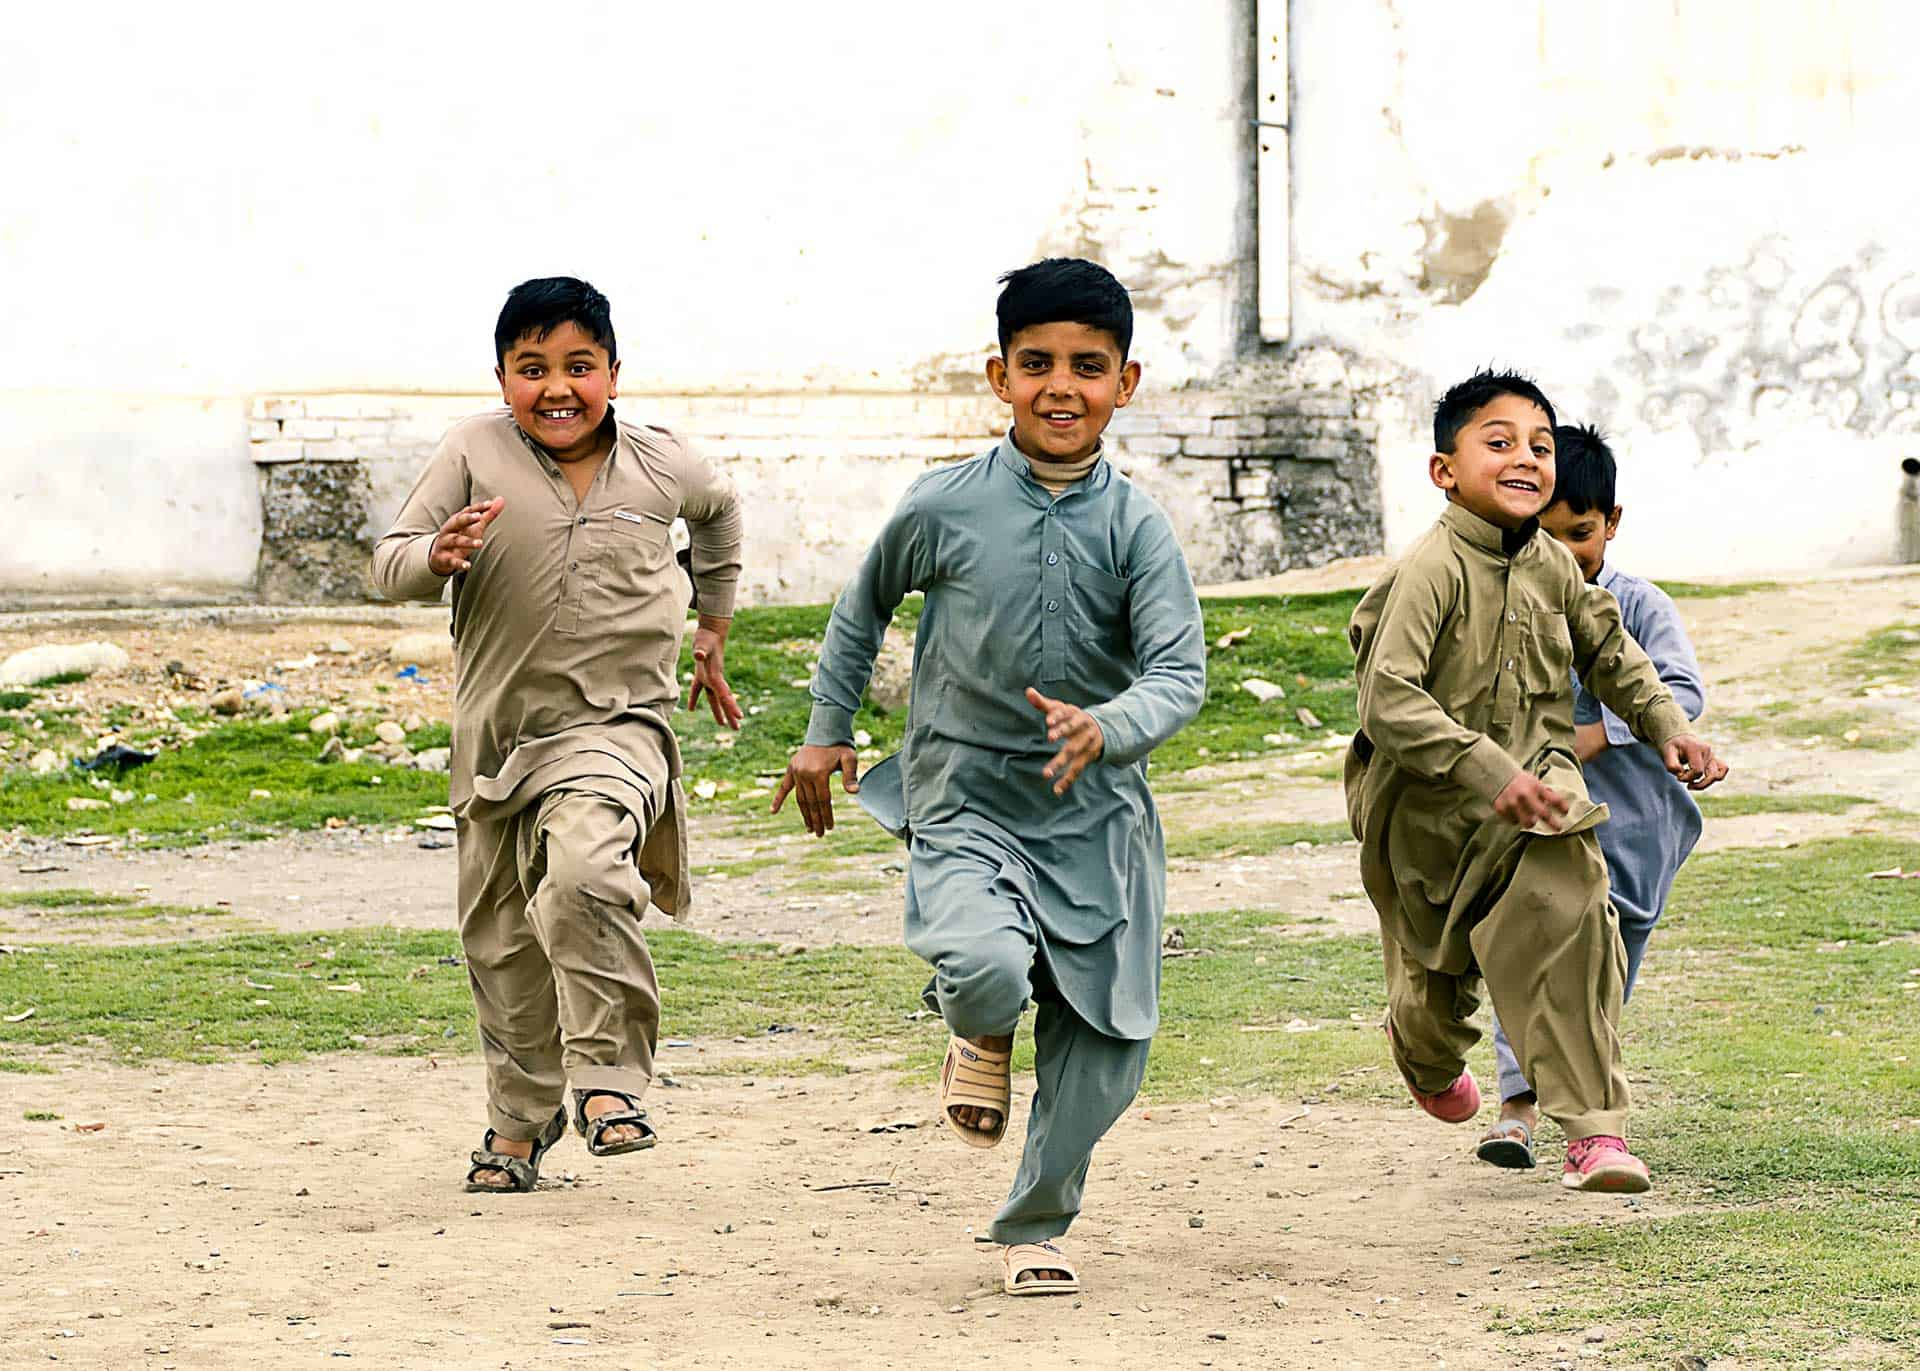 Children, Pakistan travel pakistan